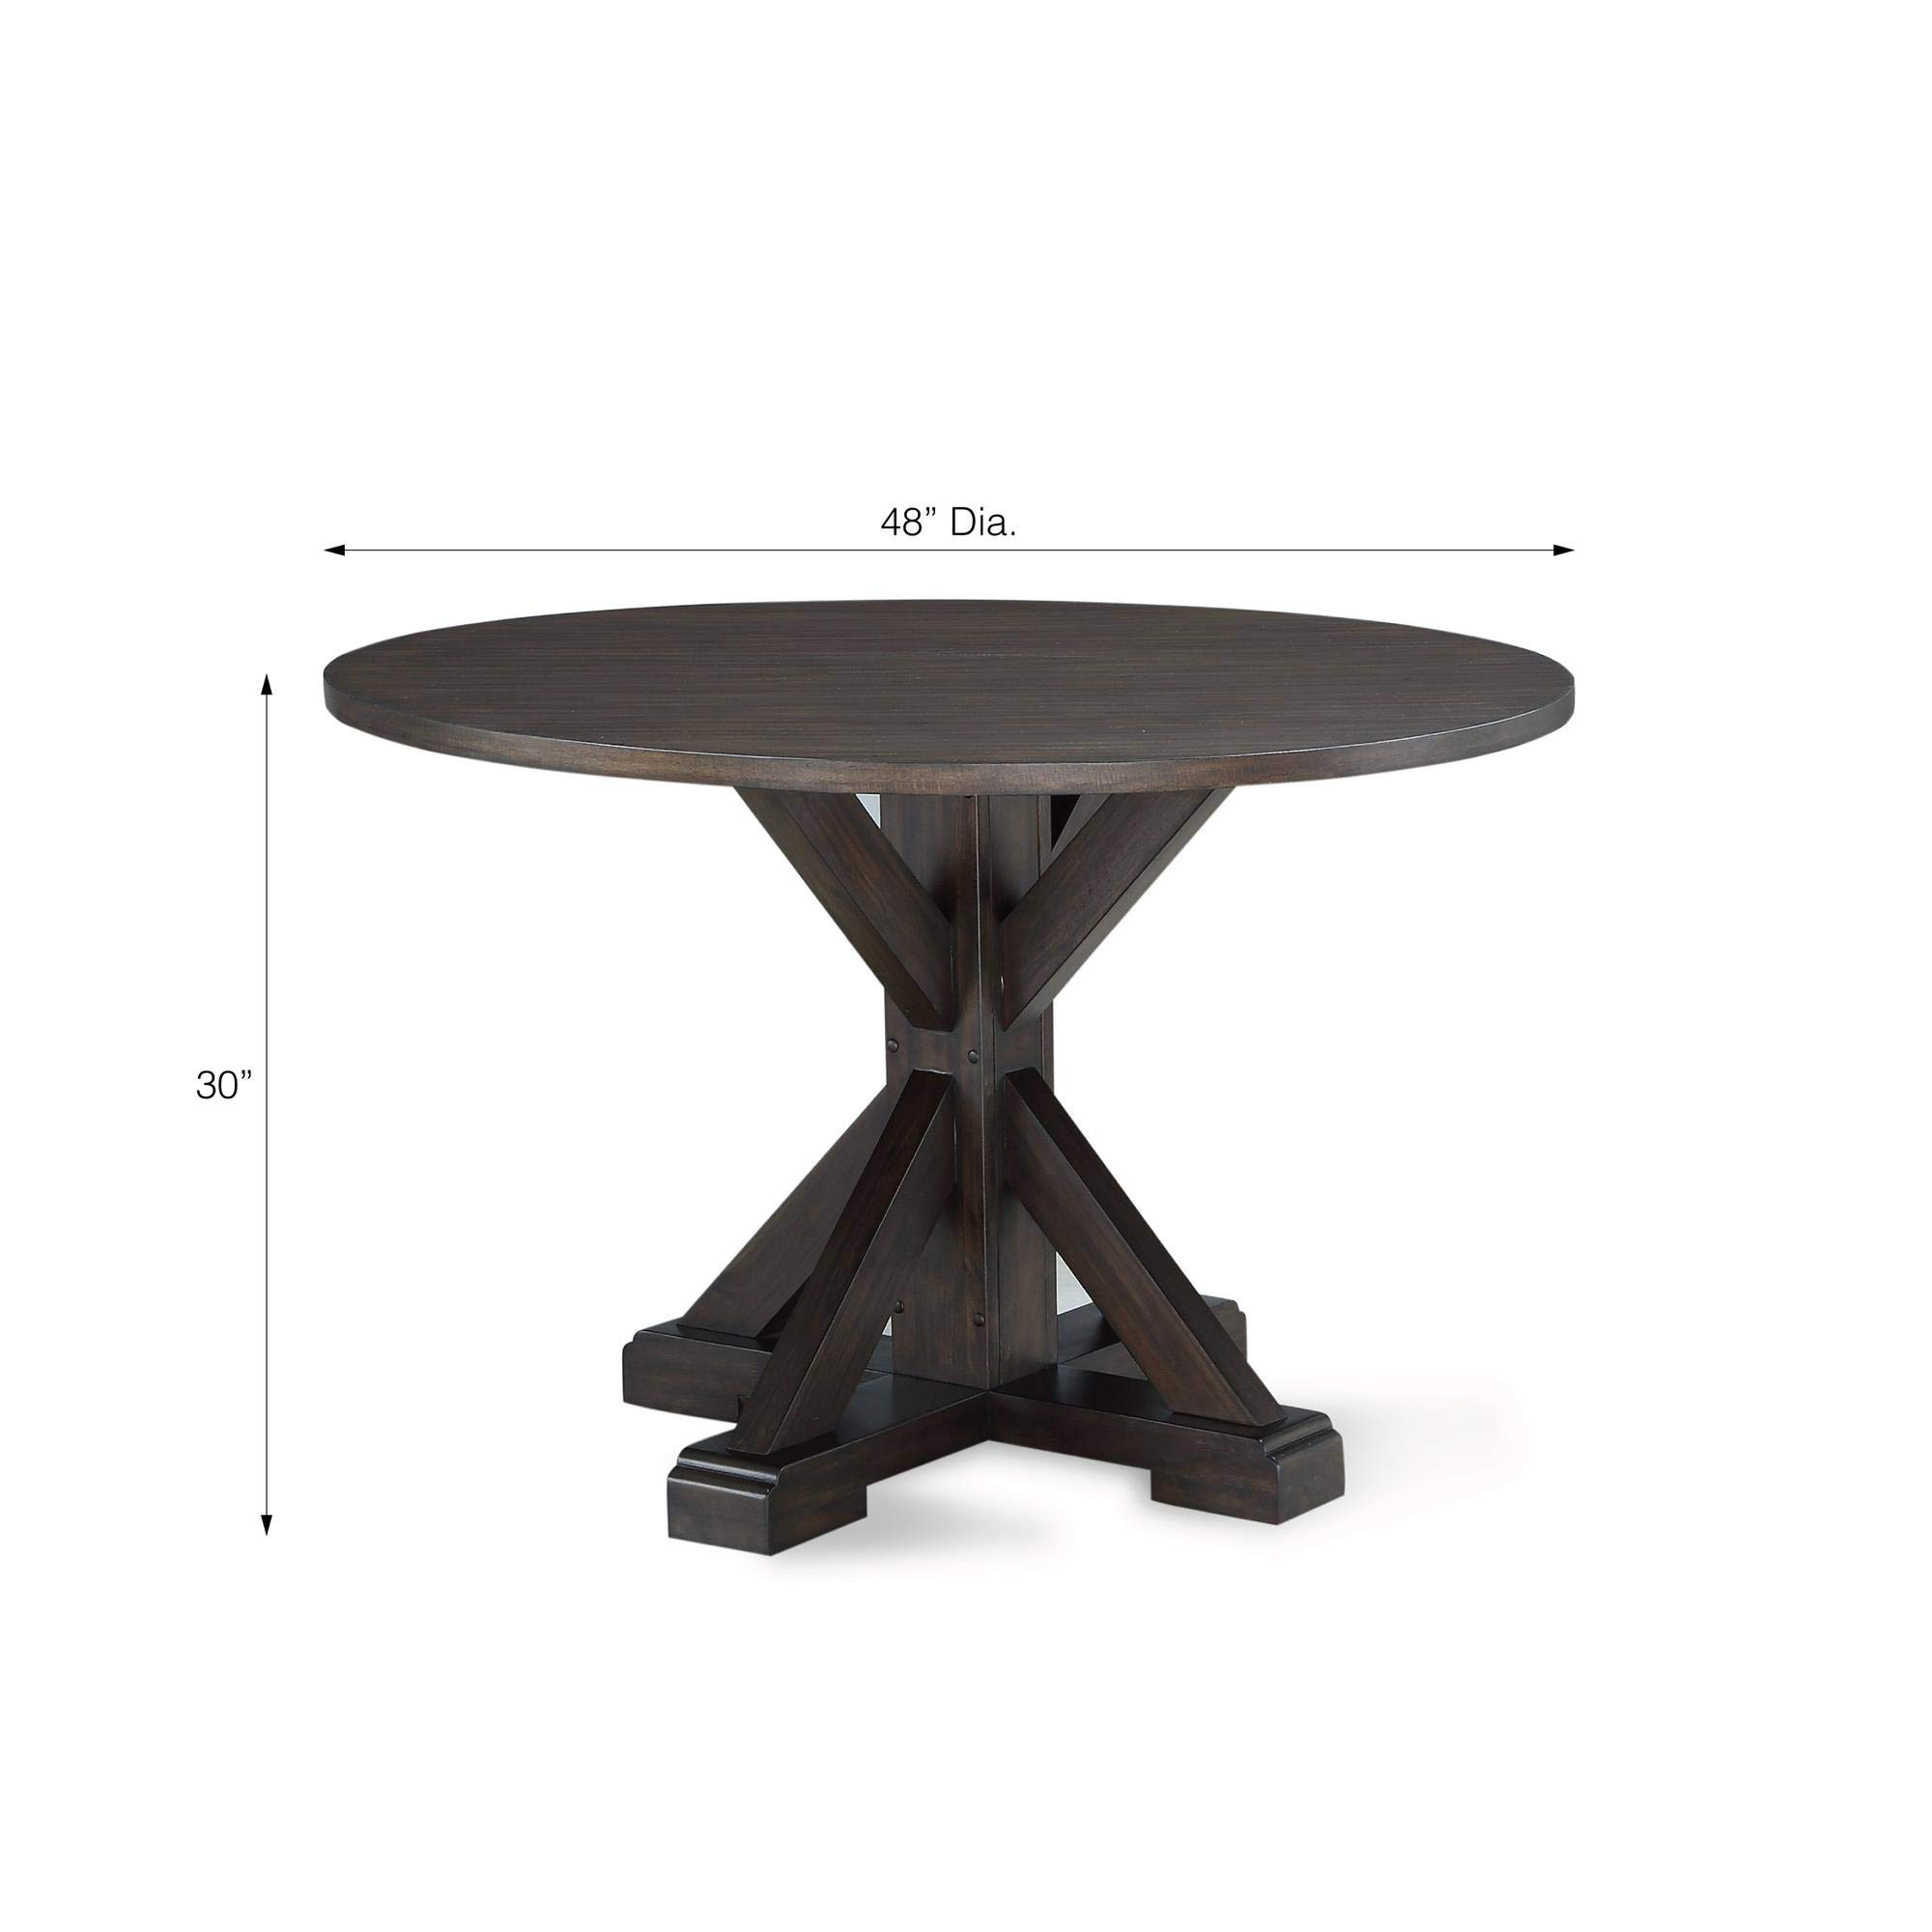 Dorel Living DA8135T Lanley Round, Rustic Brown Dining Table, by Dorel Living (Image #5)